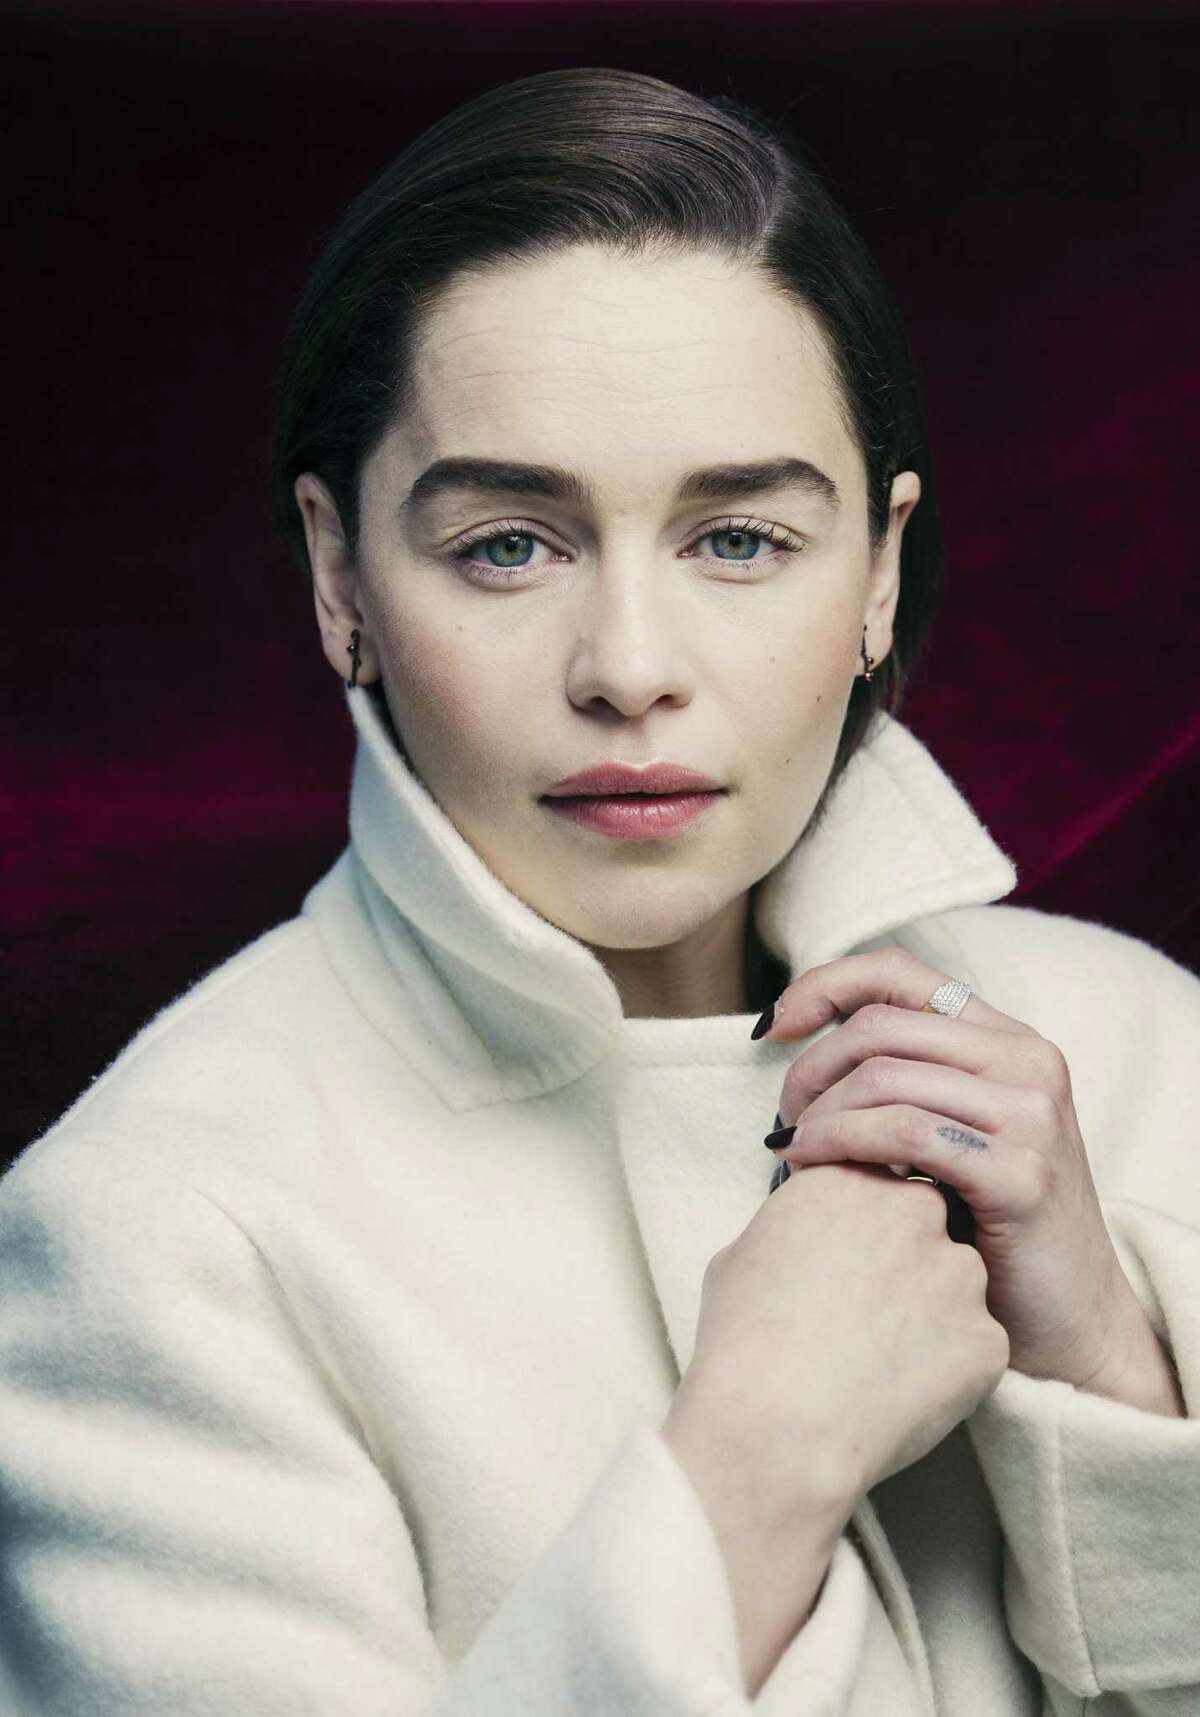 """""""Game of Thrones"""" star Emilia Clarke at the Mandarin Oriental Hotel in Manhattan, April 3, 2019. Clarke has conquered her health issues. Now will Daenerys conquer the Seven Kingdoms?"""